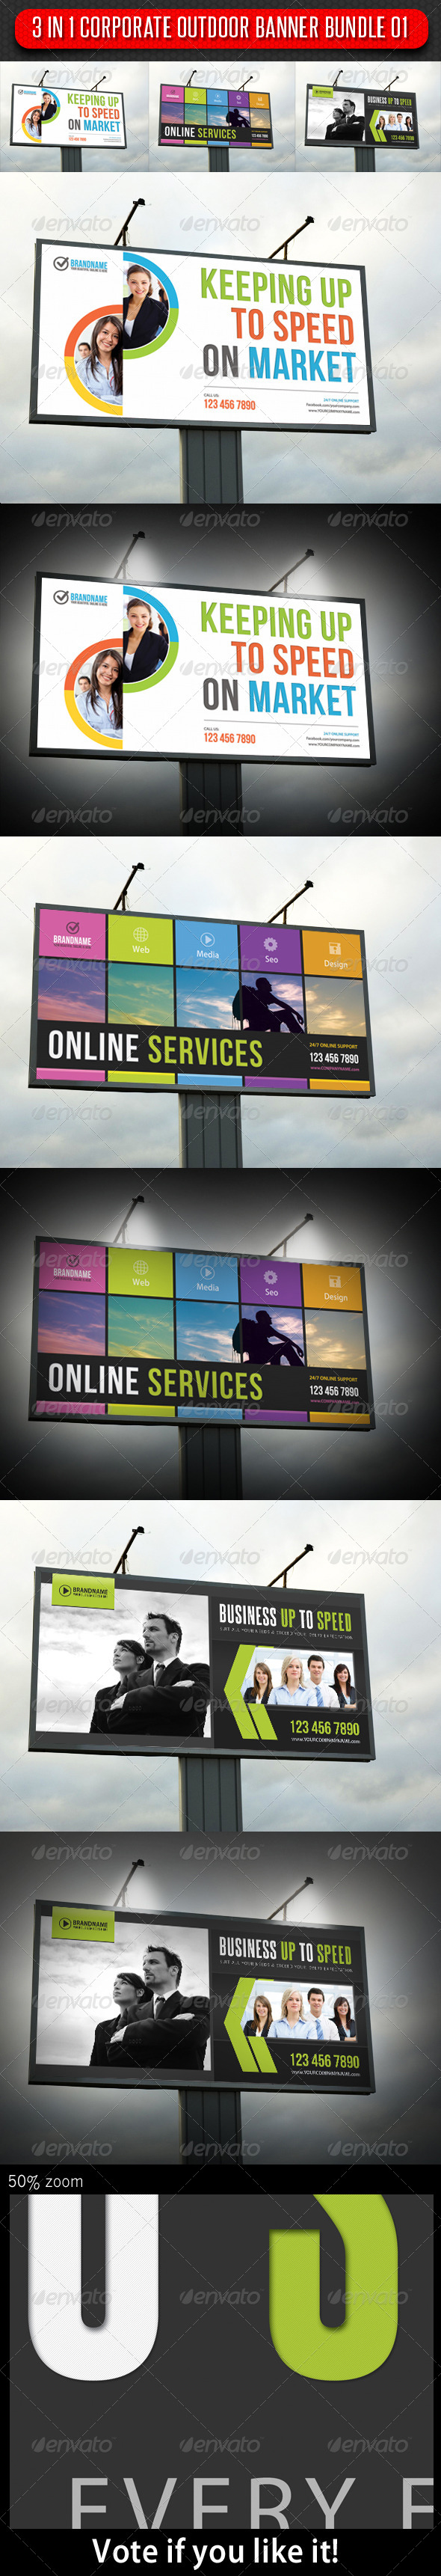 GraphicRiver 3 in 1 Corporate Banner Bundle 01 6627647